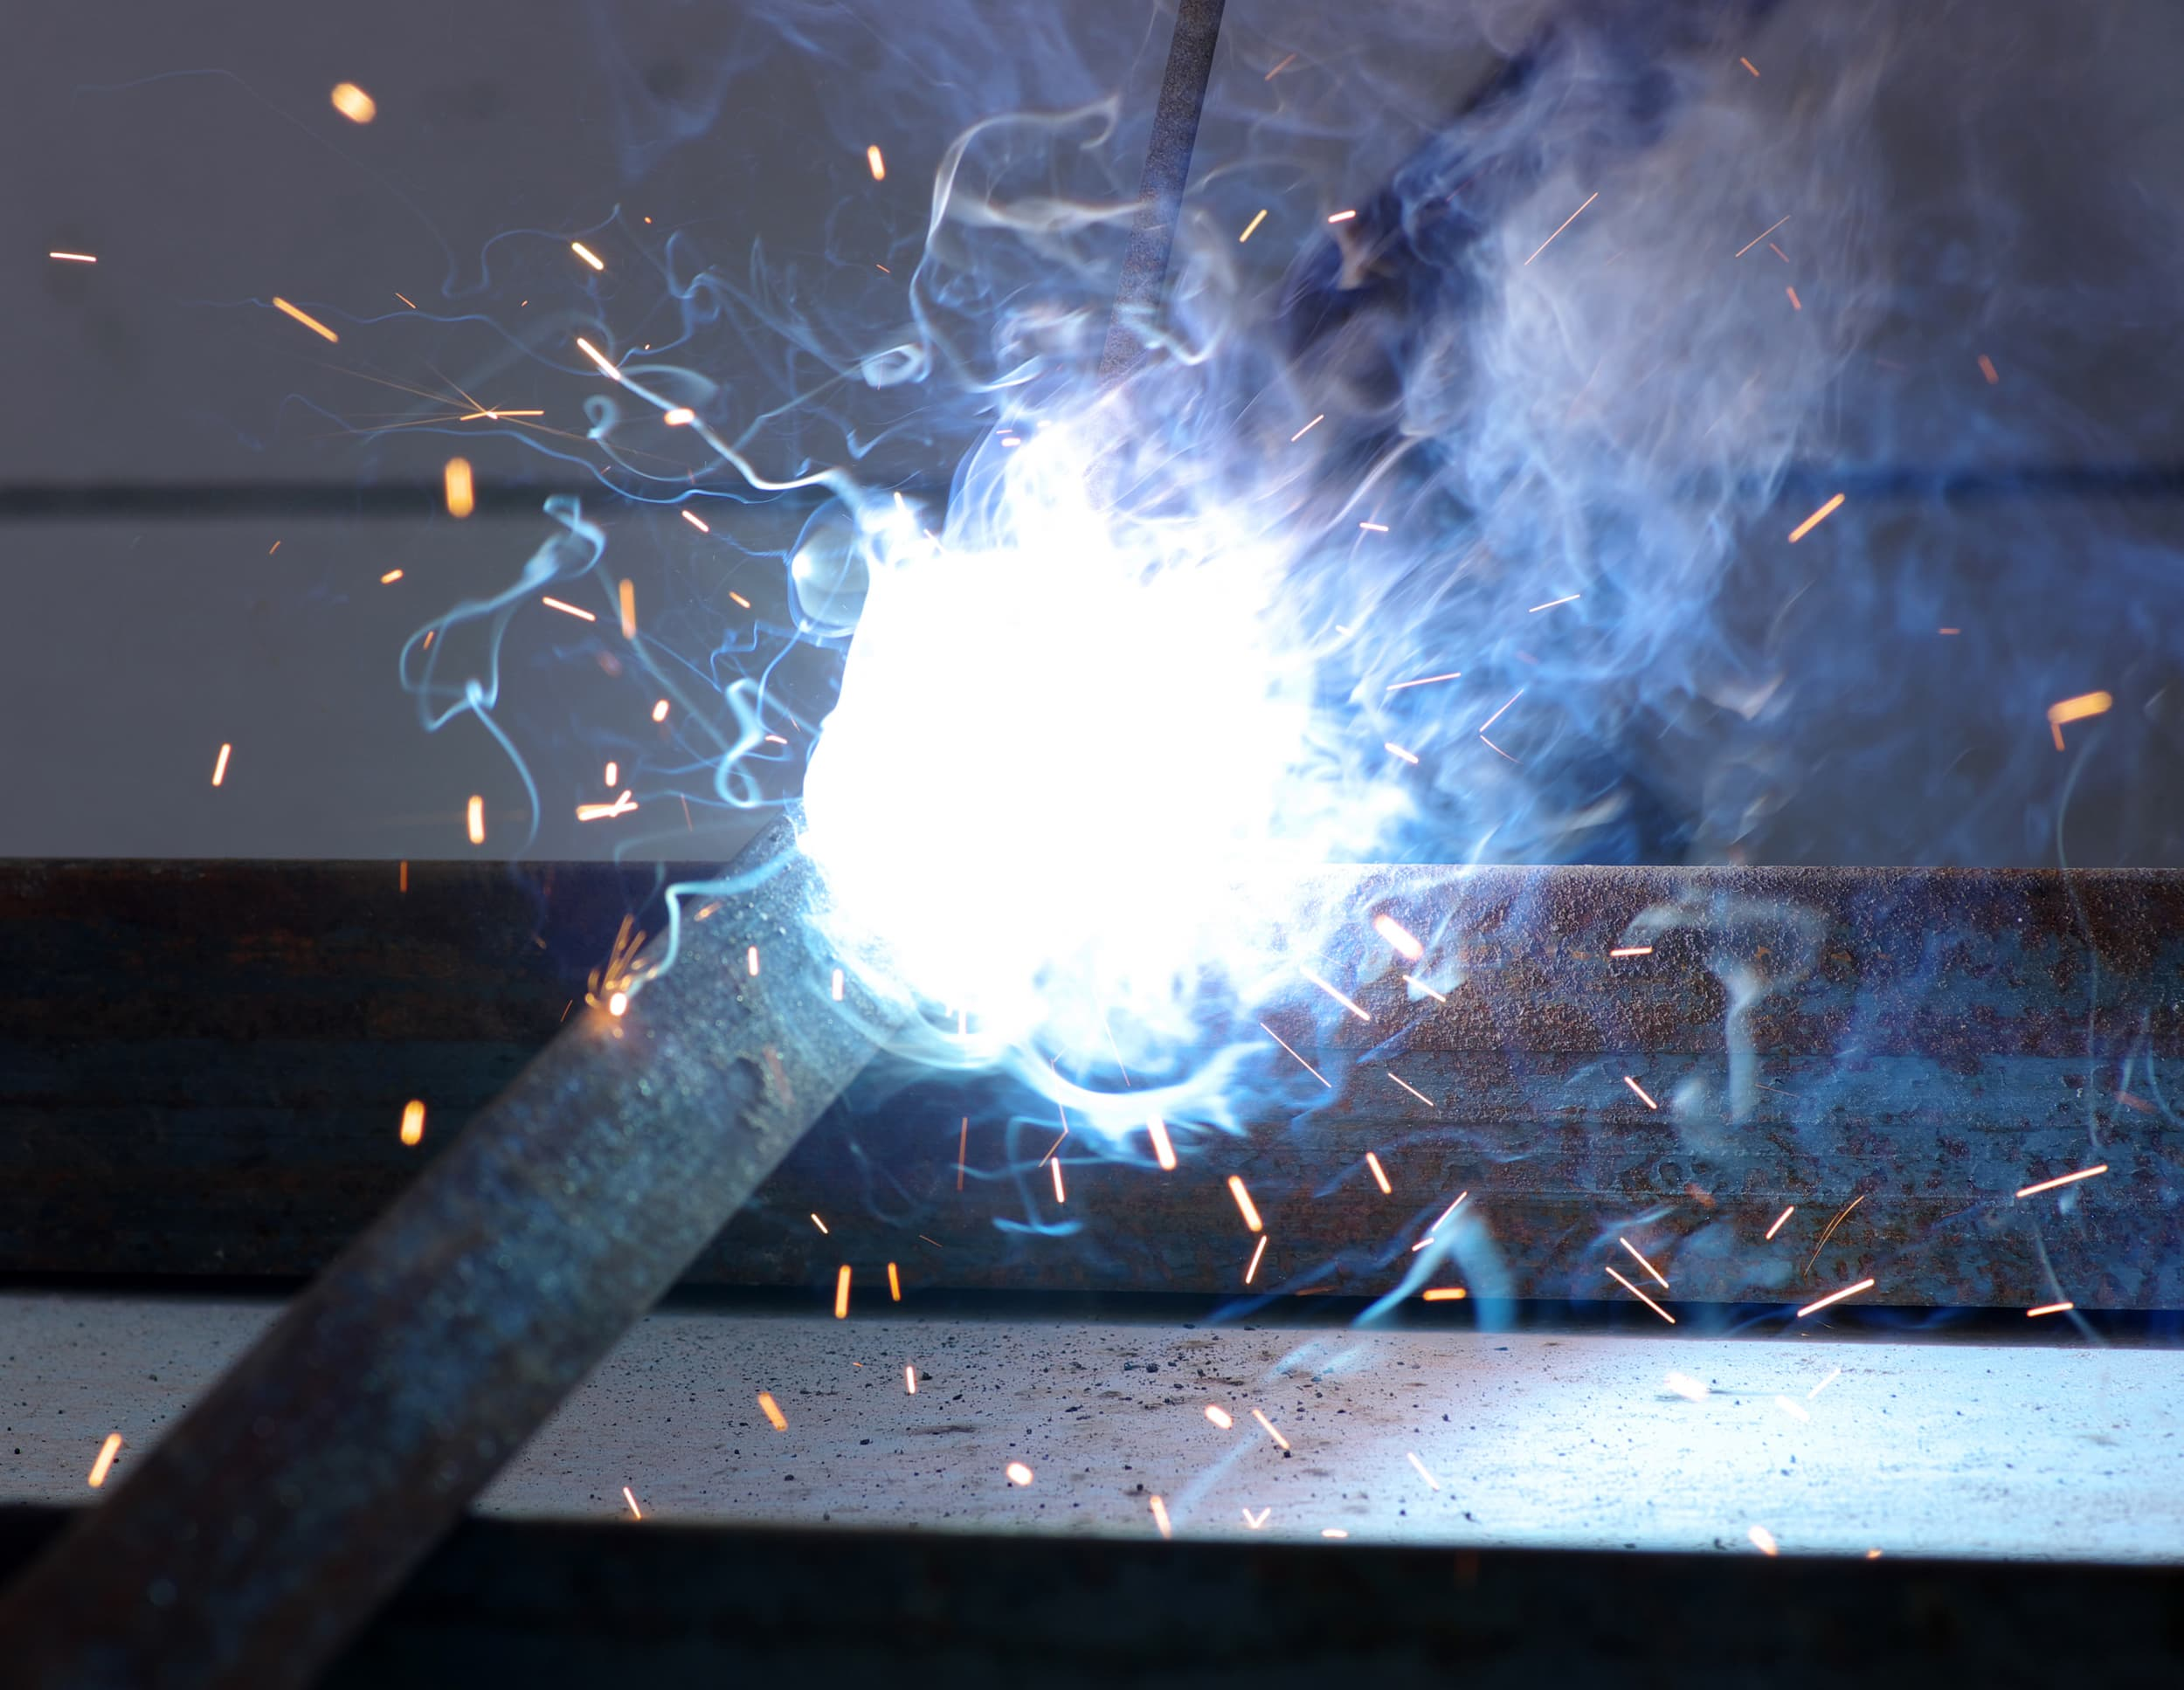 Compliance Training Online Canada Arc Flash Safety course